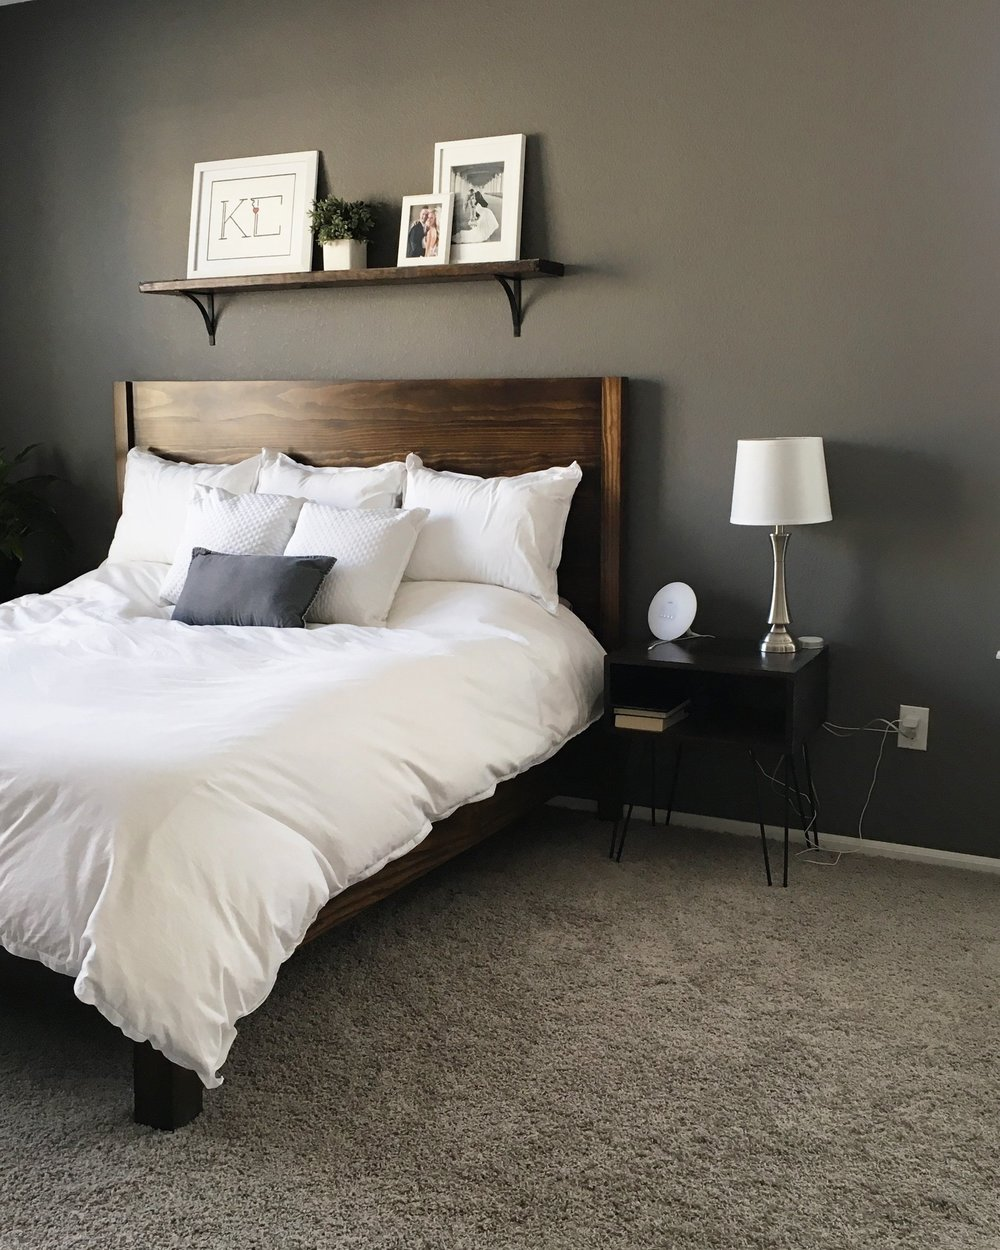 Your Simplified Home - 1. Schedule a free, 20 minute phone consultation.2. Allow us to create a customized, step-by-step guide to declutter and organize your home.3. We will consult and work beside you to execute the plan together.